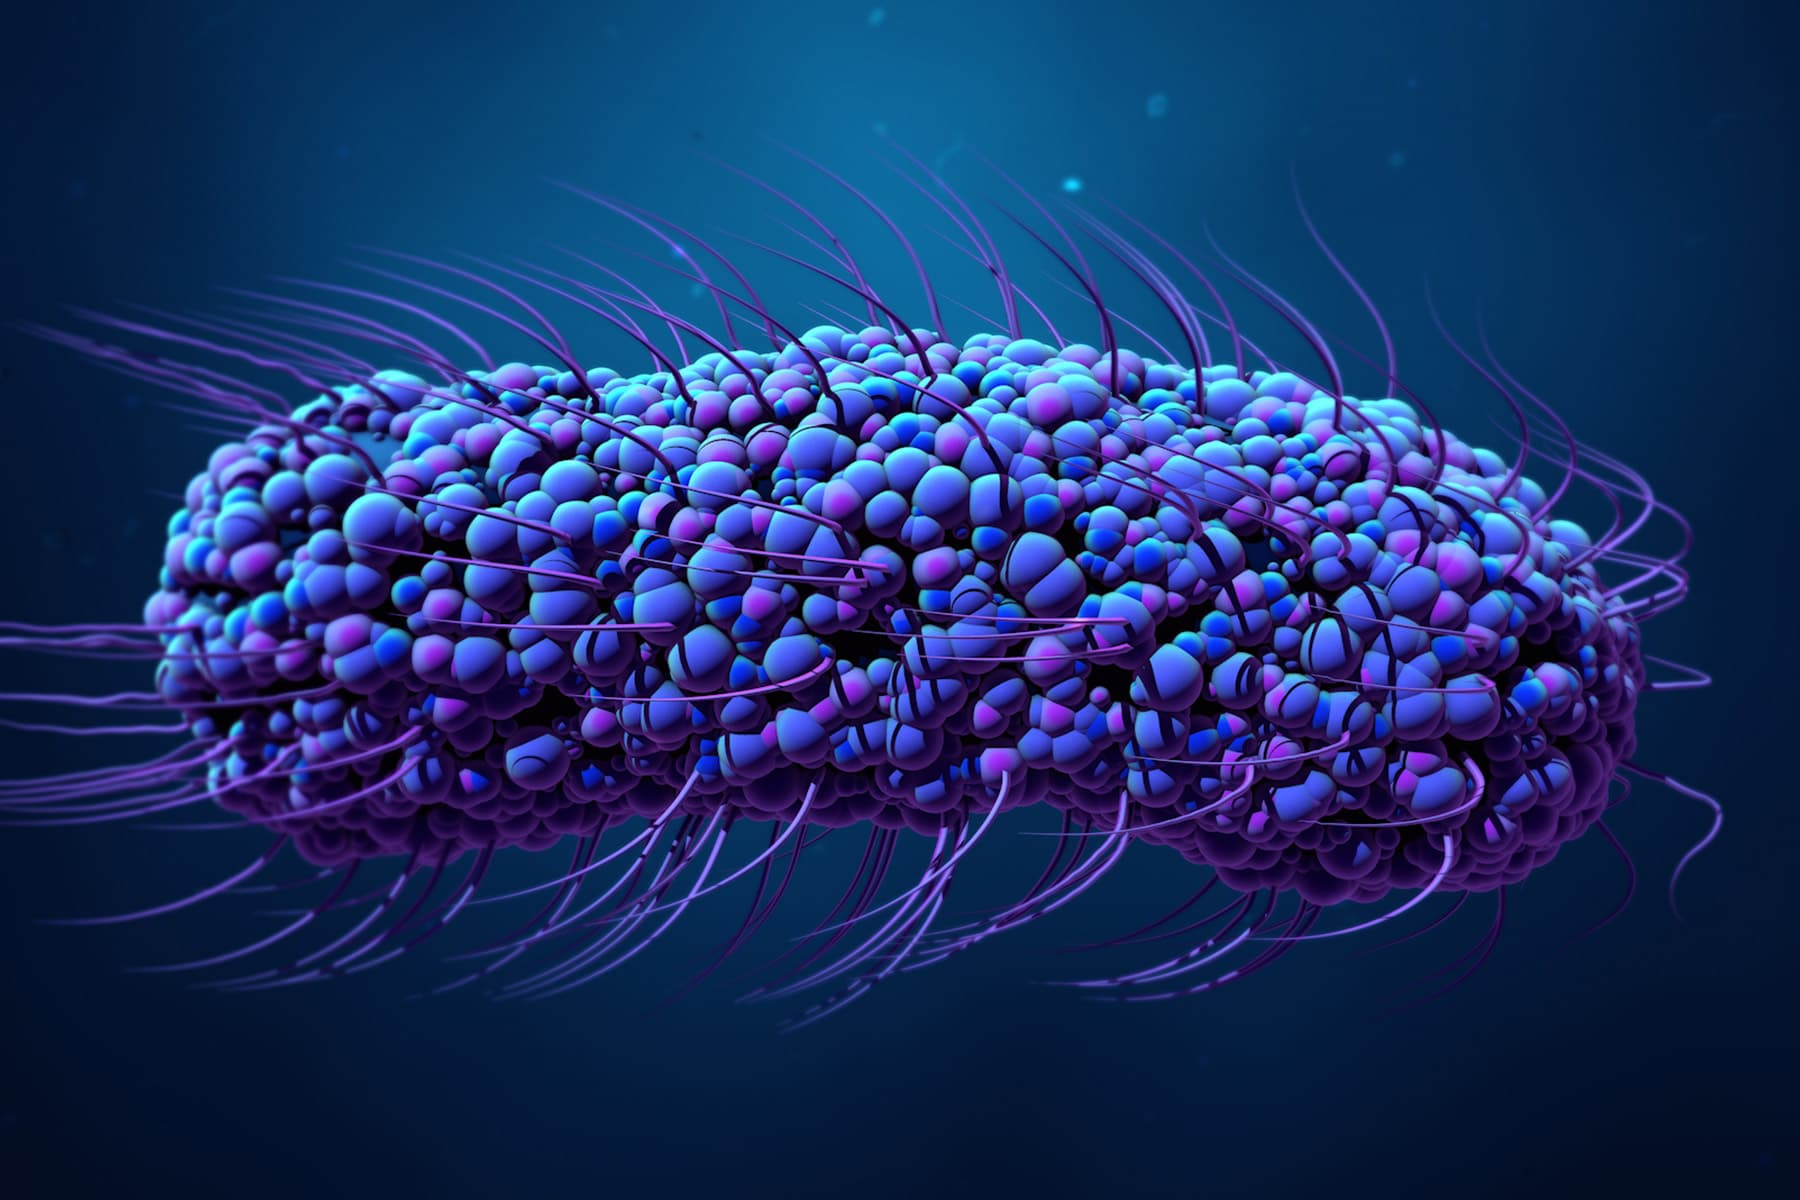 3d bacteria illustration